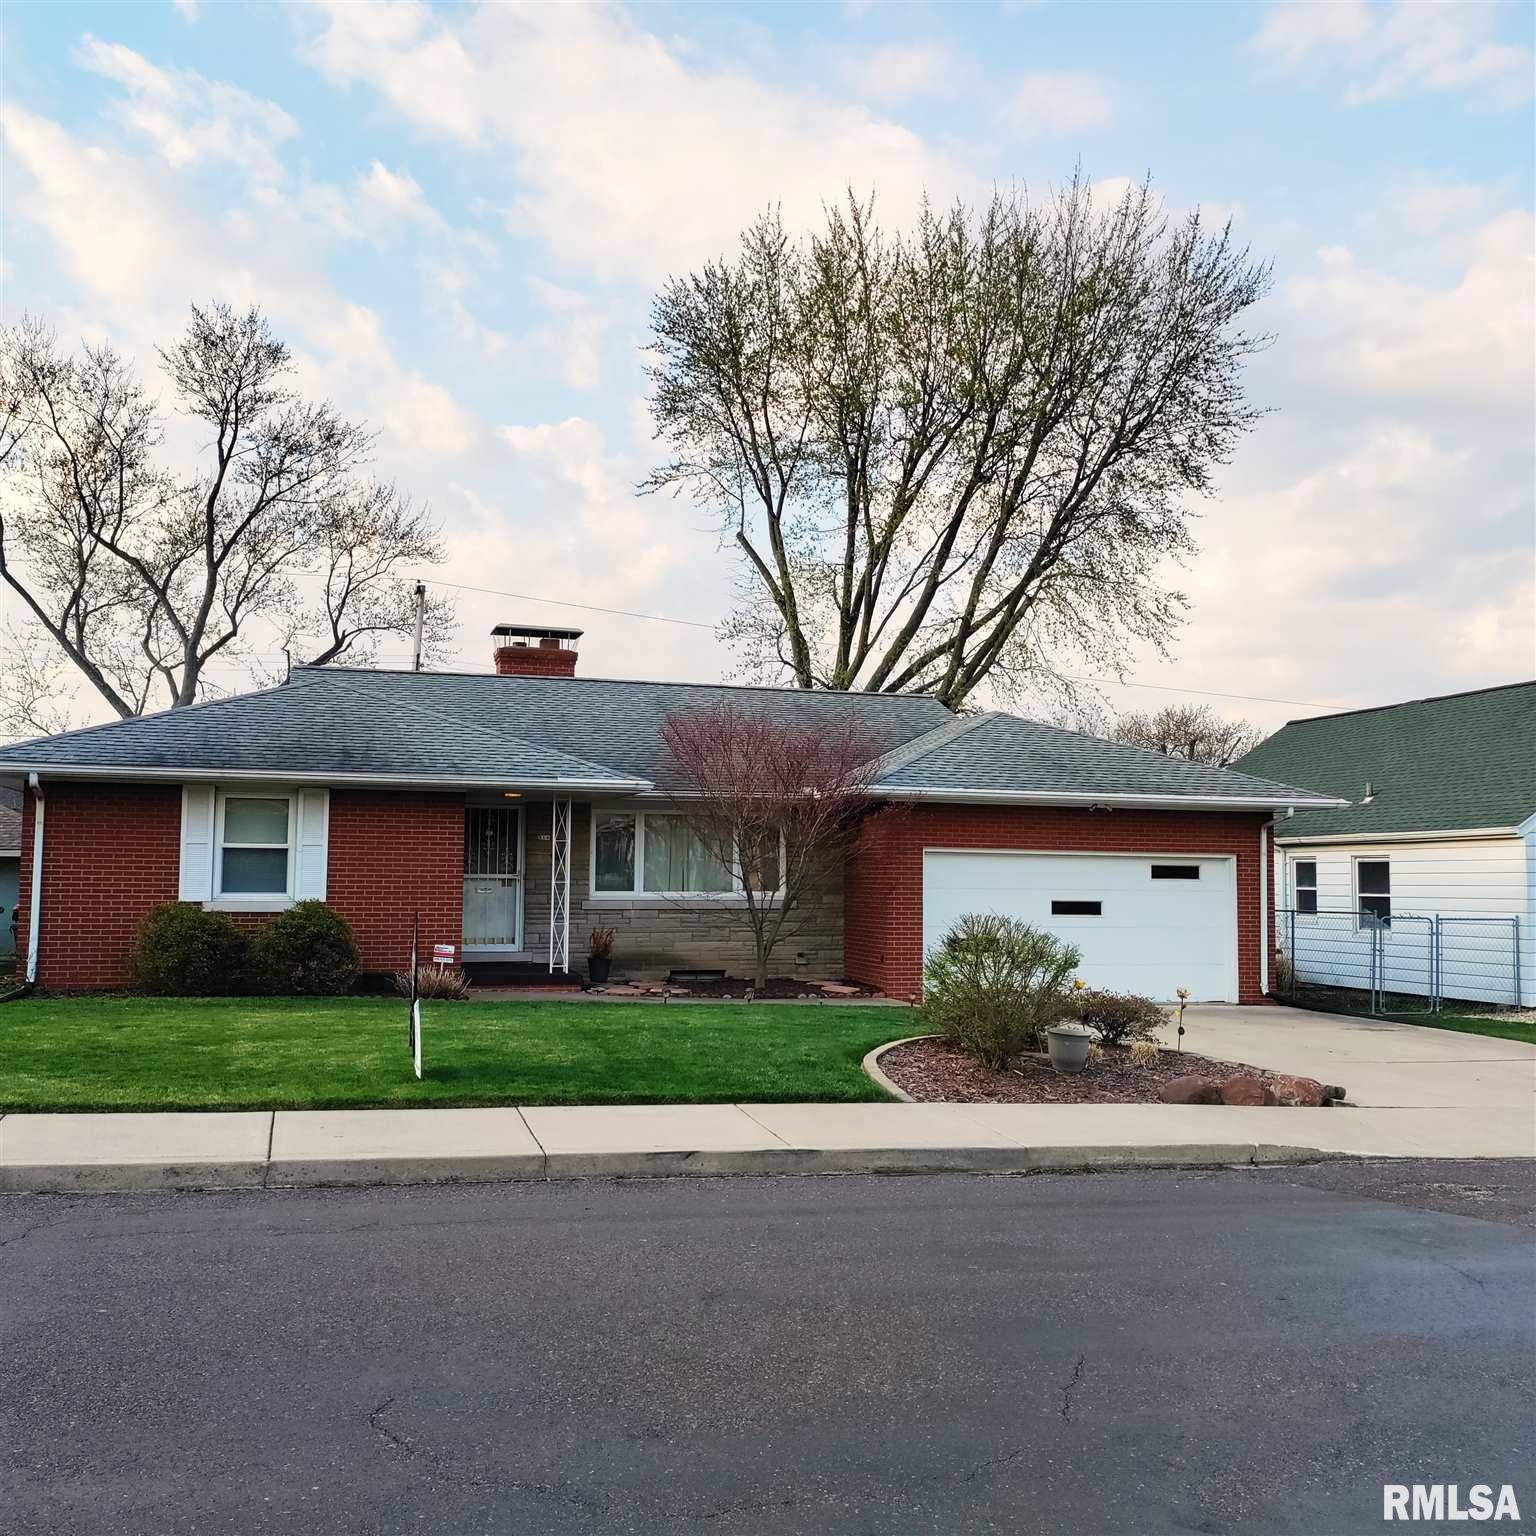 314 W FLORENCE Property Photo - Peoria, IL real estate listing